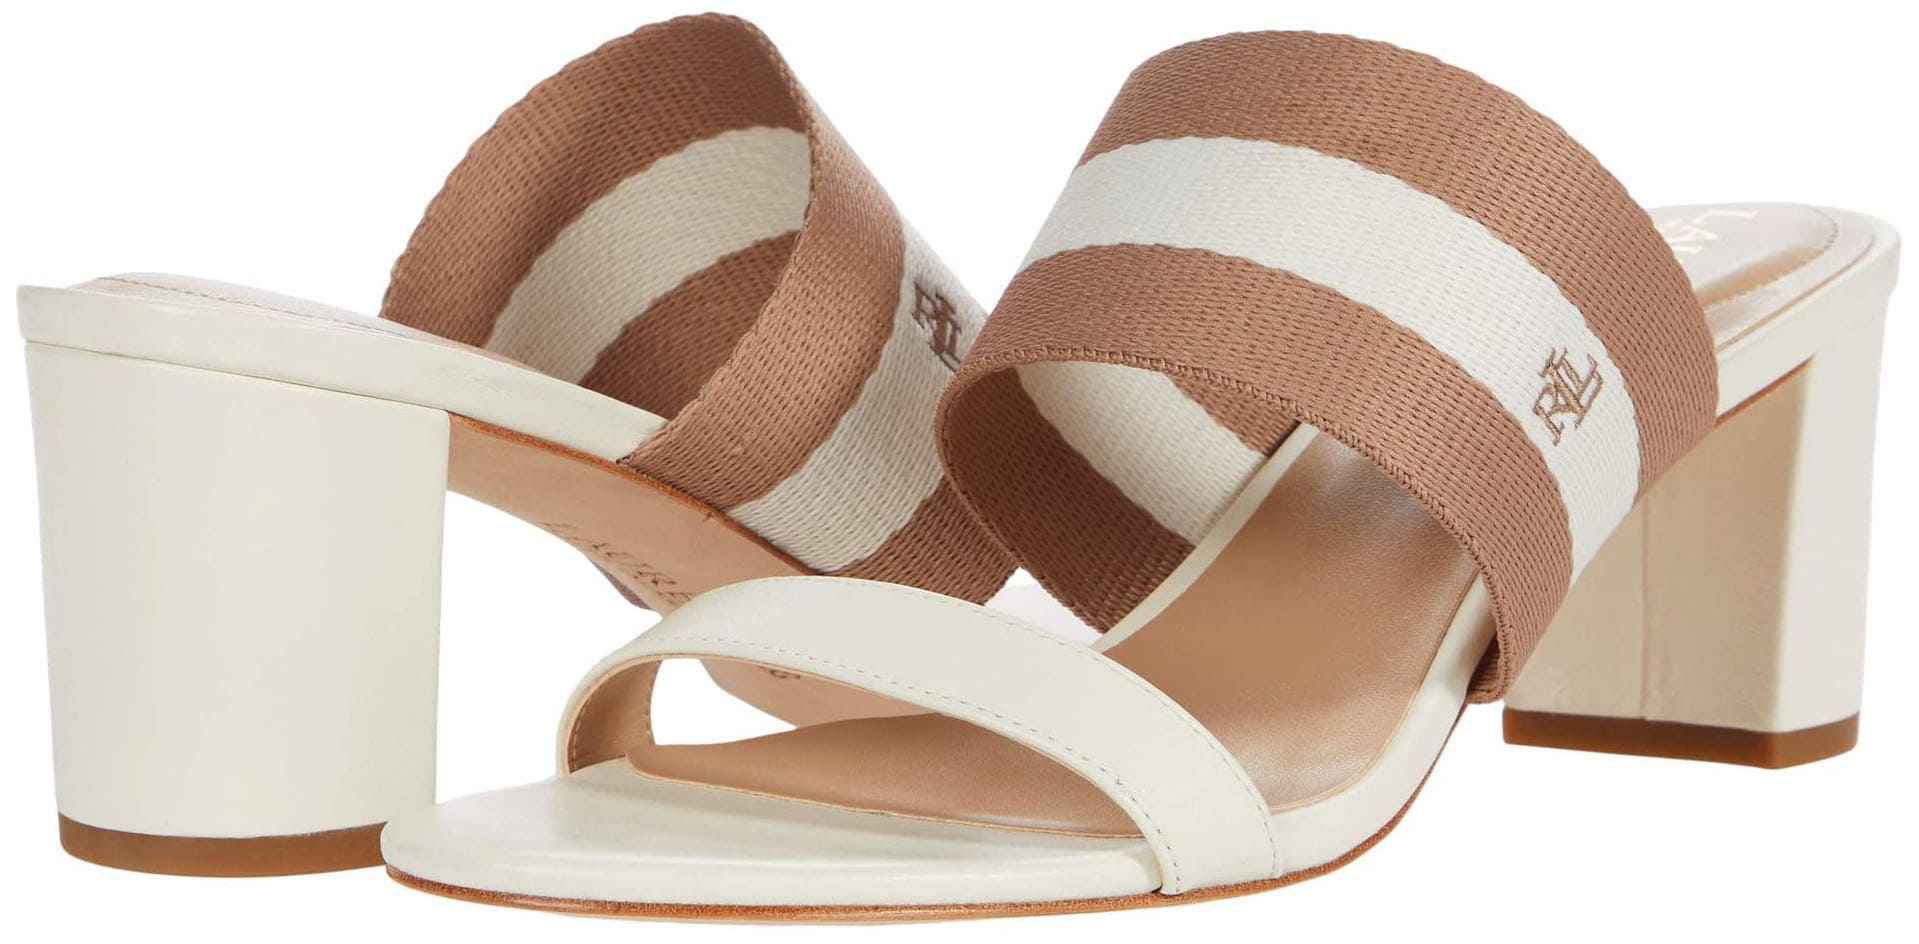 Aside from navy, the Ralph Lauren Whitfield sandals are also available in vanilla/nude colorway